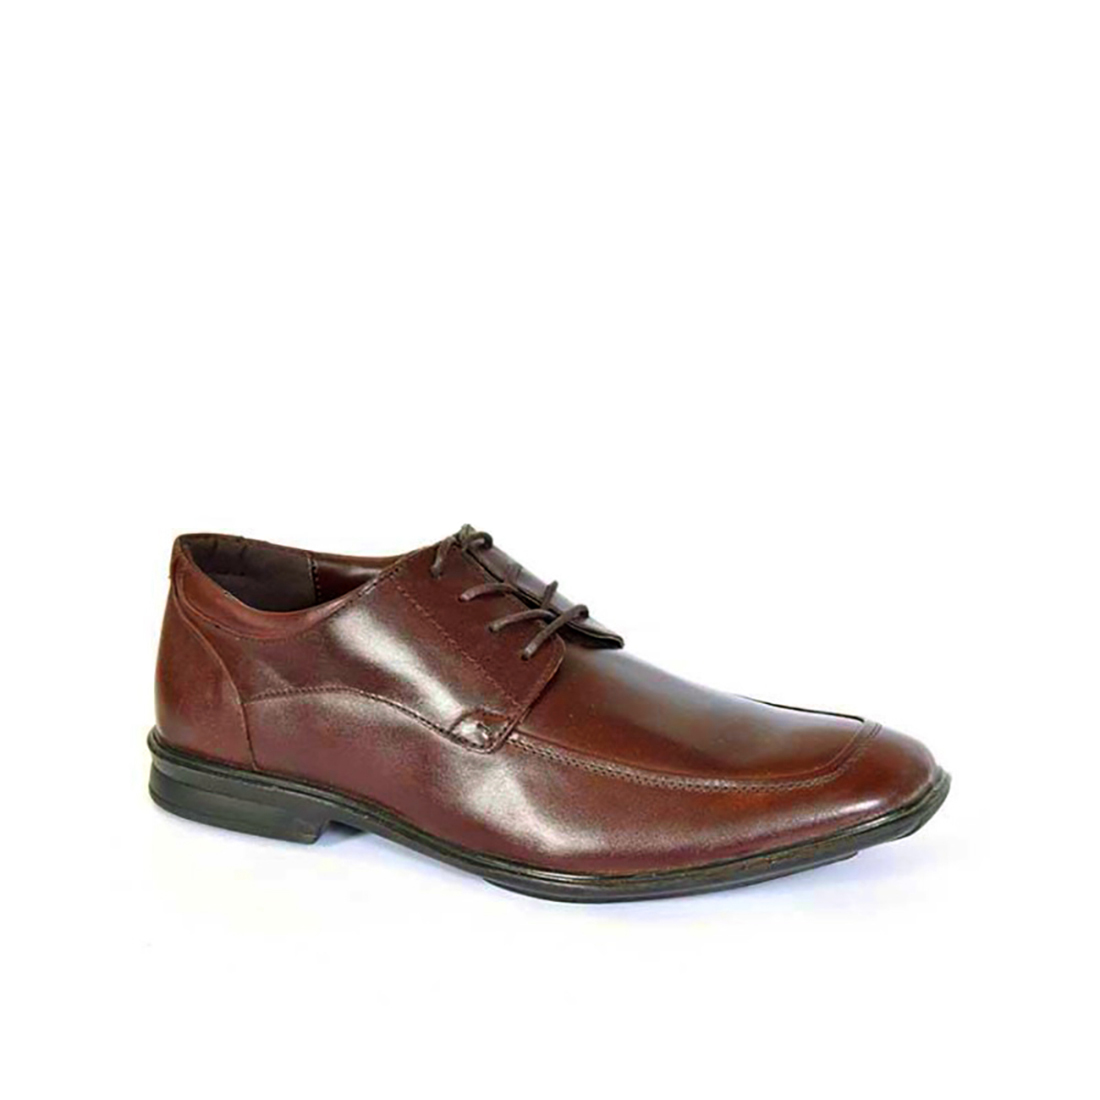 Hush Puppies GRAVITY OXFORD MOC TOE Mens Leather Dress Shoes by Wolverine